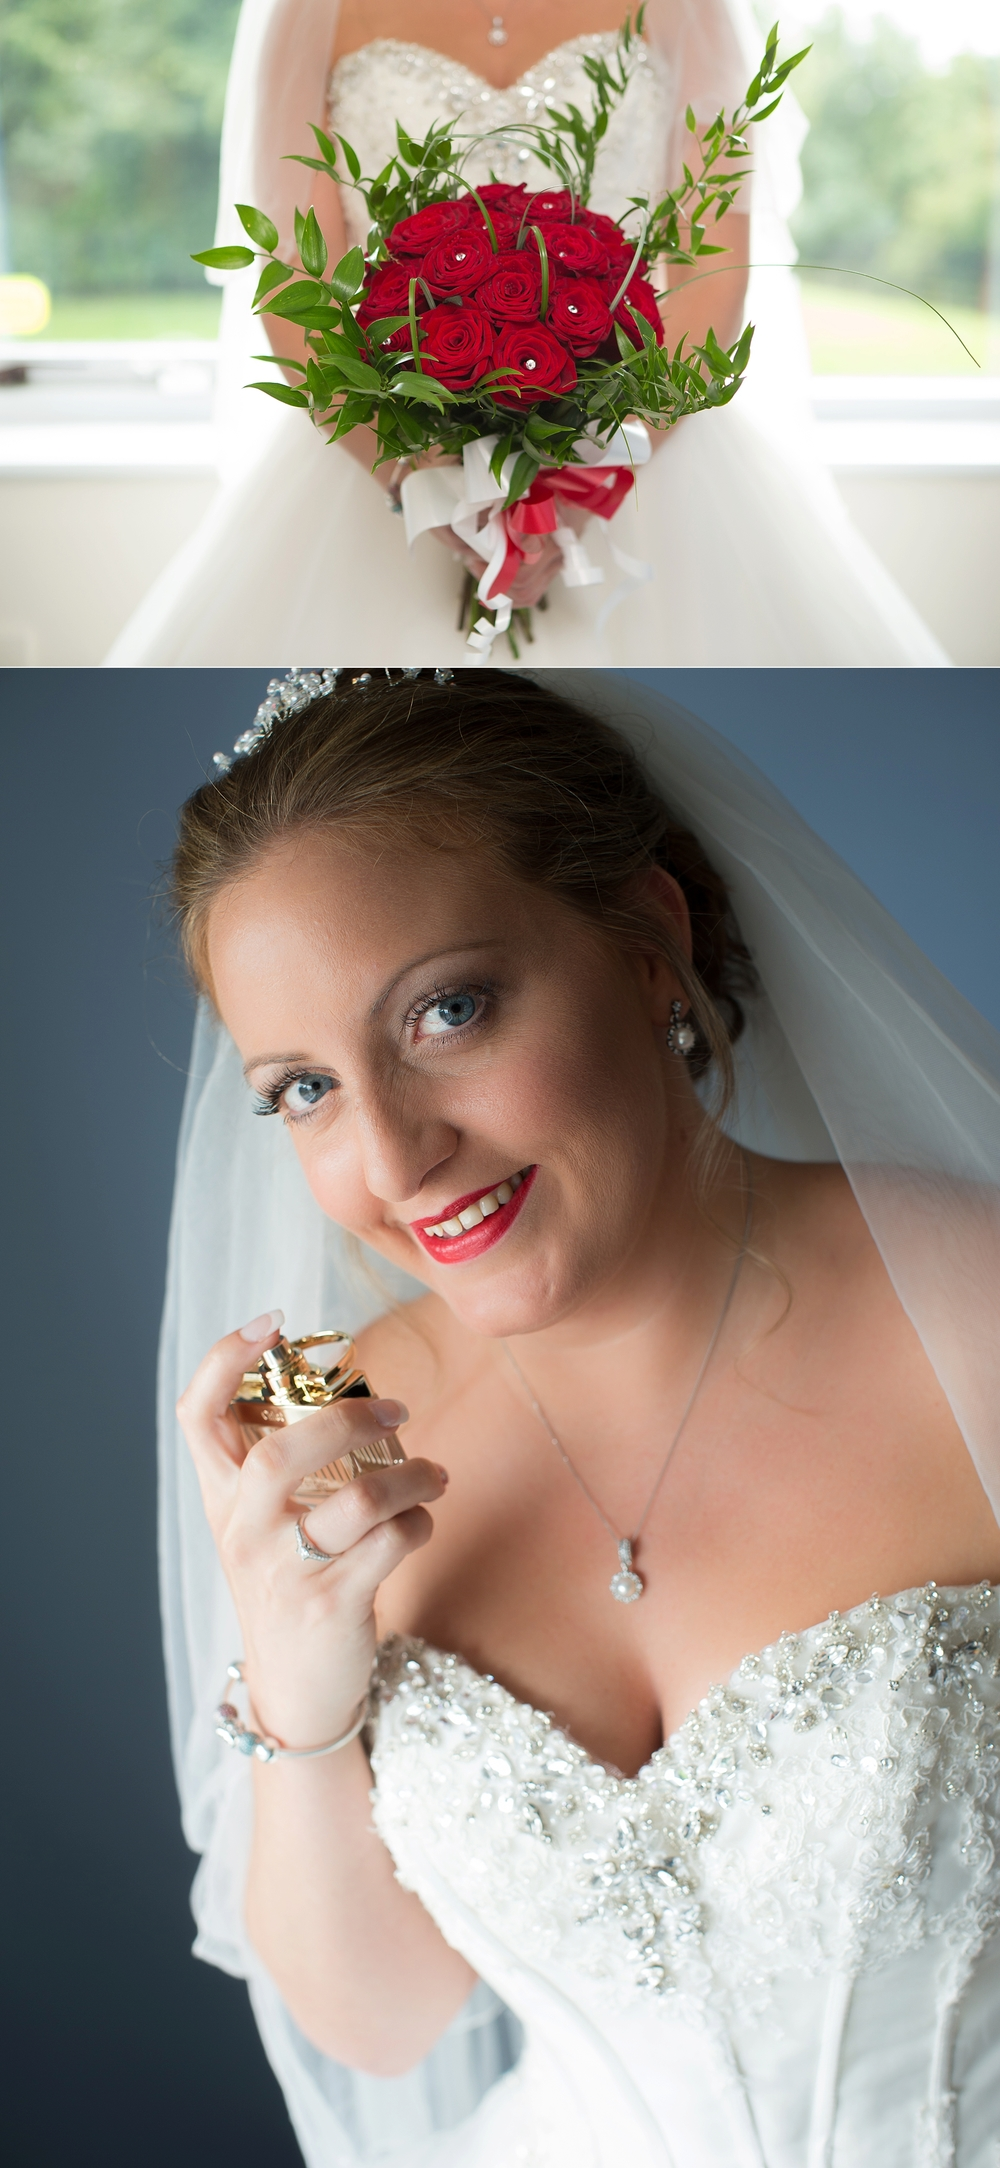 wedding photographer floral hall tunstall stoke on trent 7.jpg